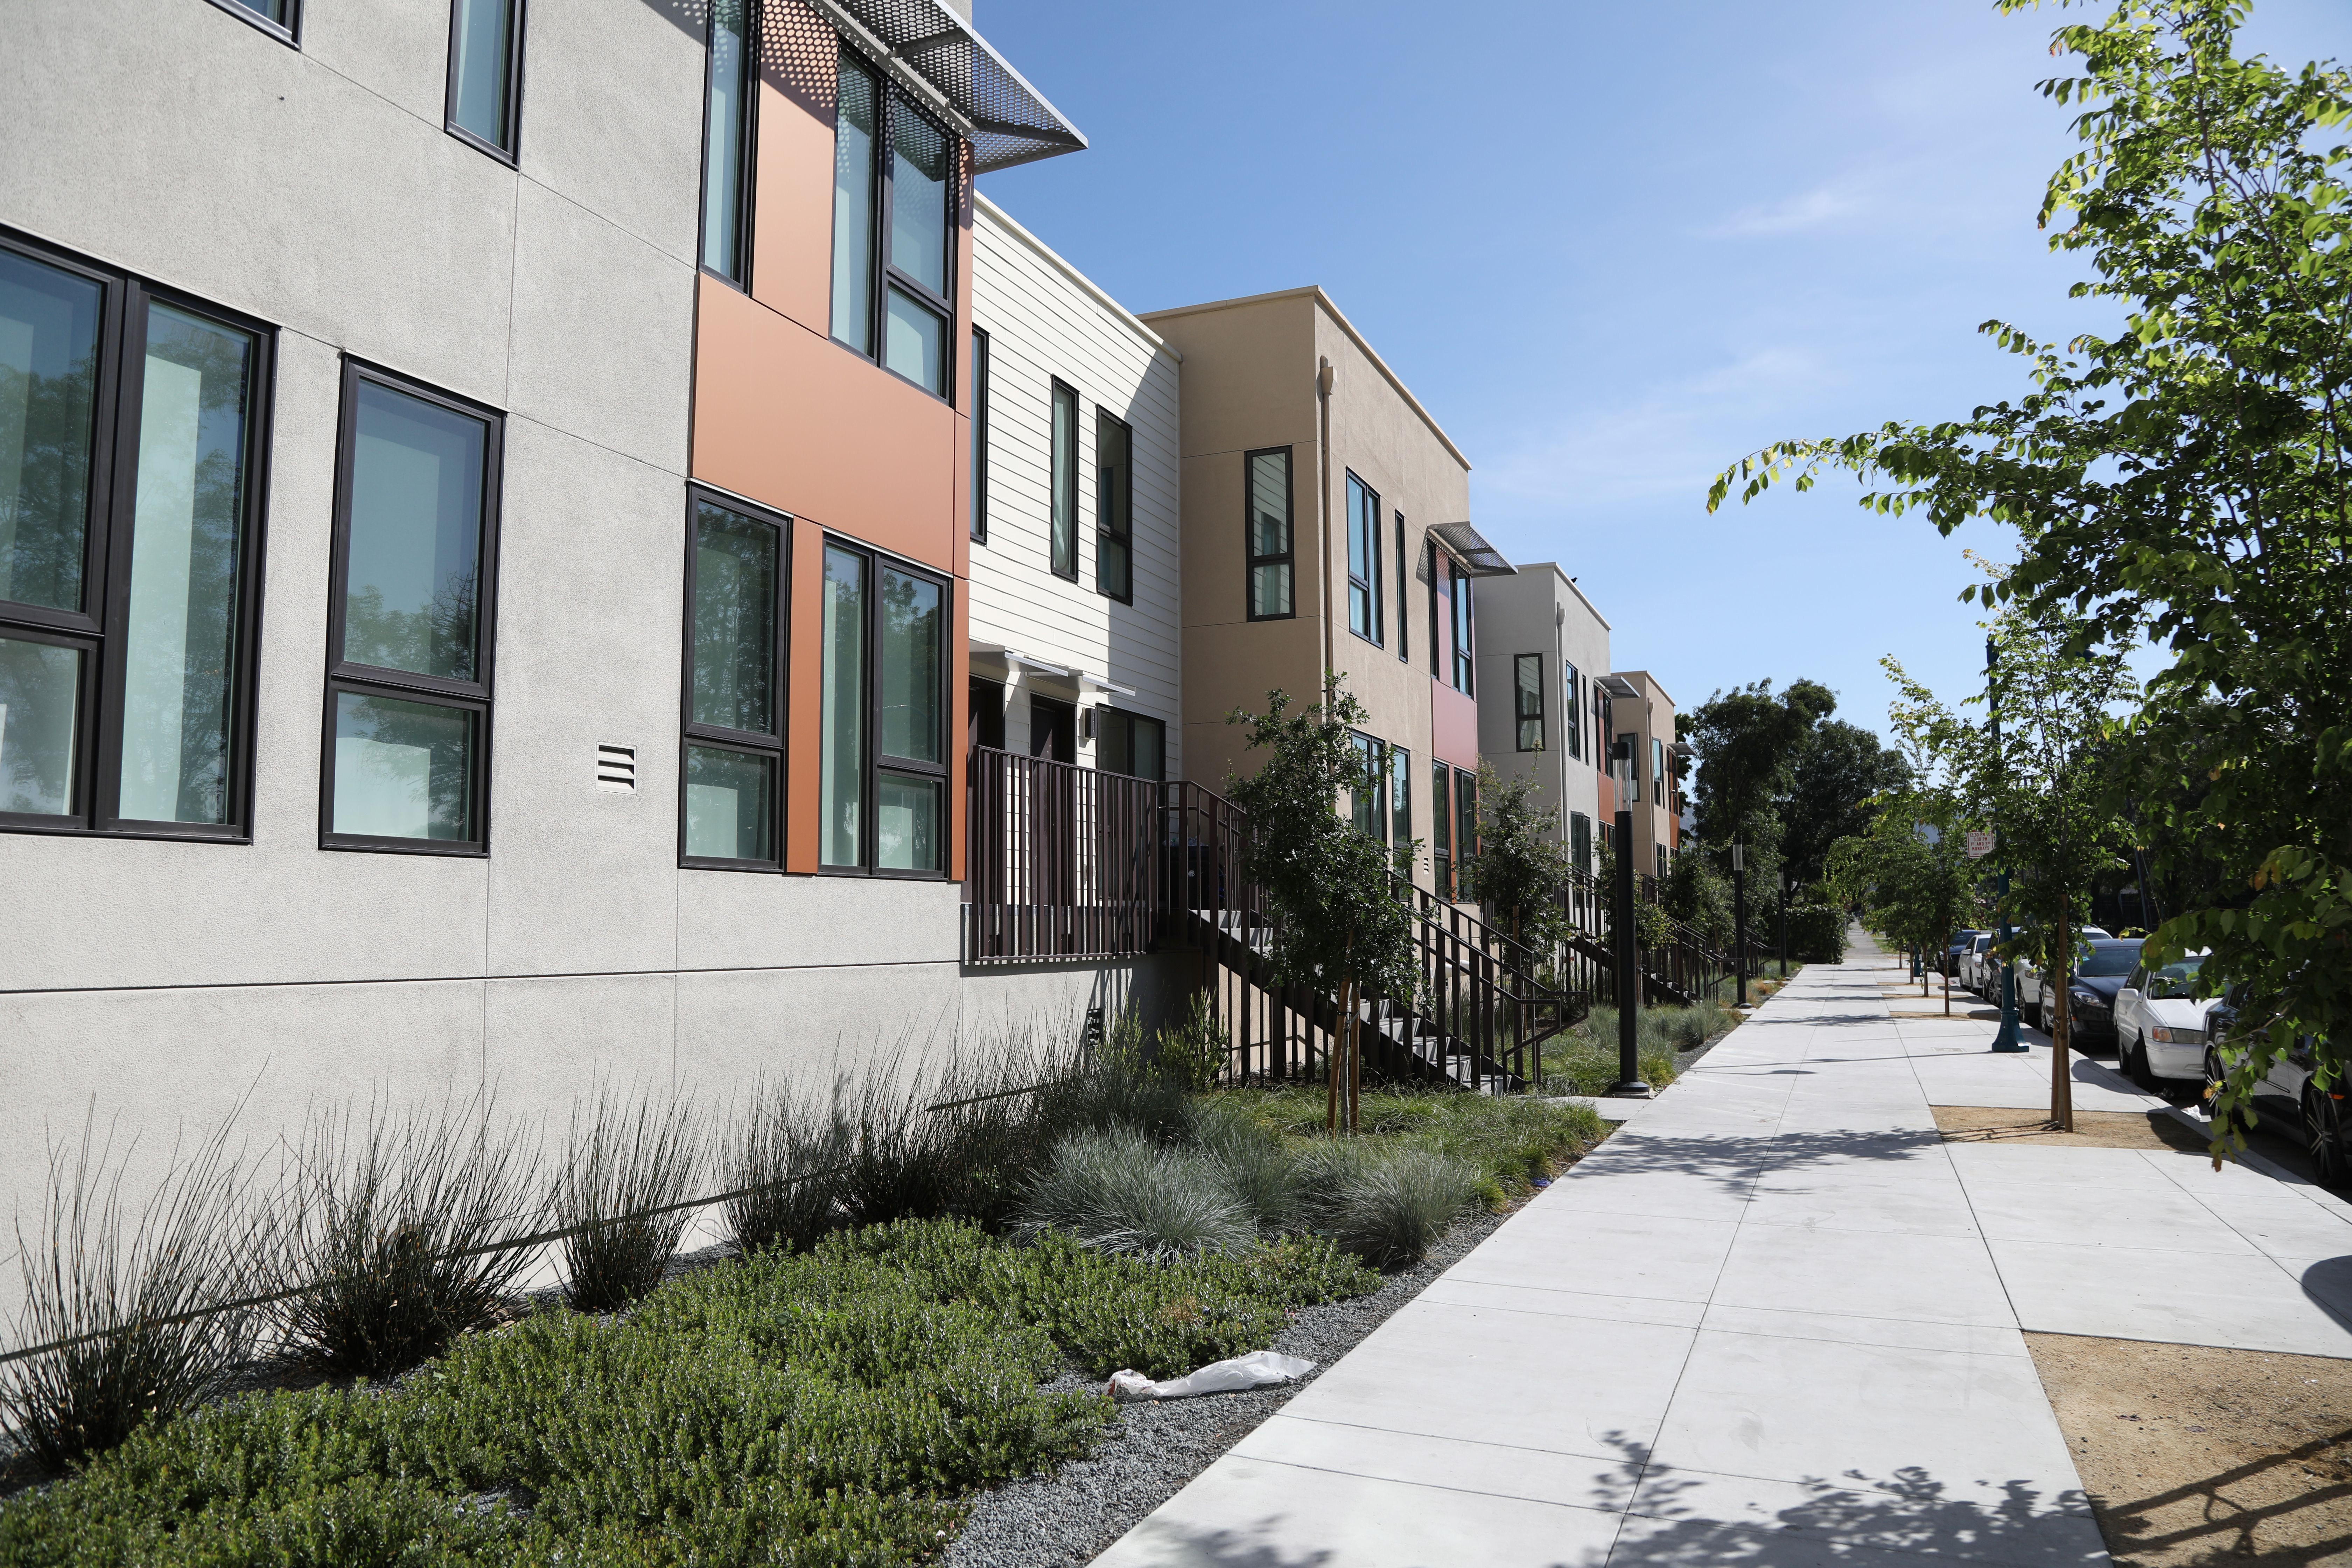 Wide sidewalks and environmentally friendly landscaping surround the apartment units